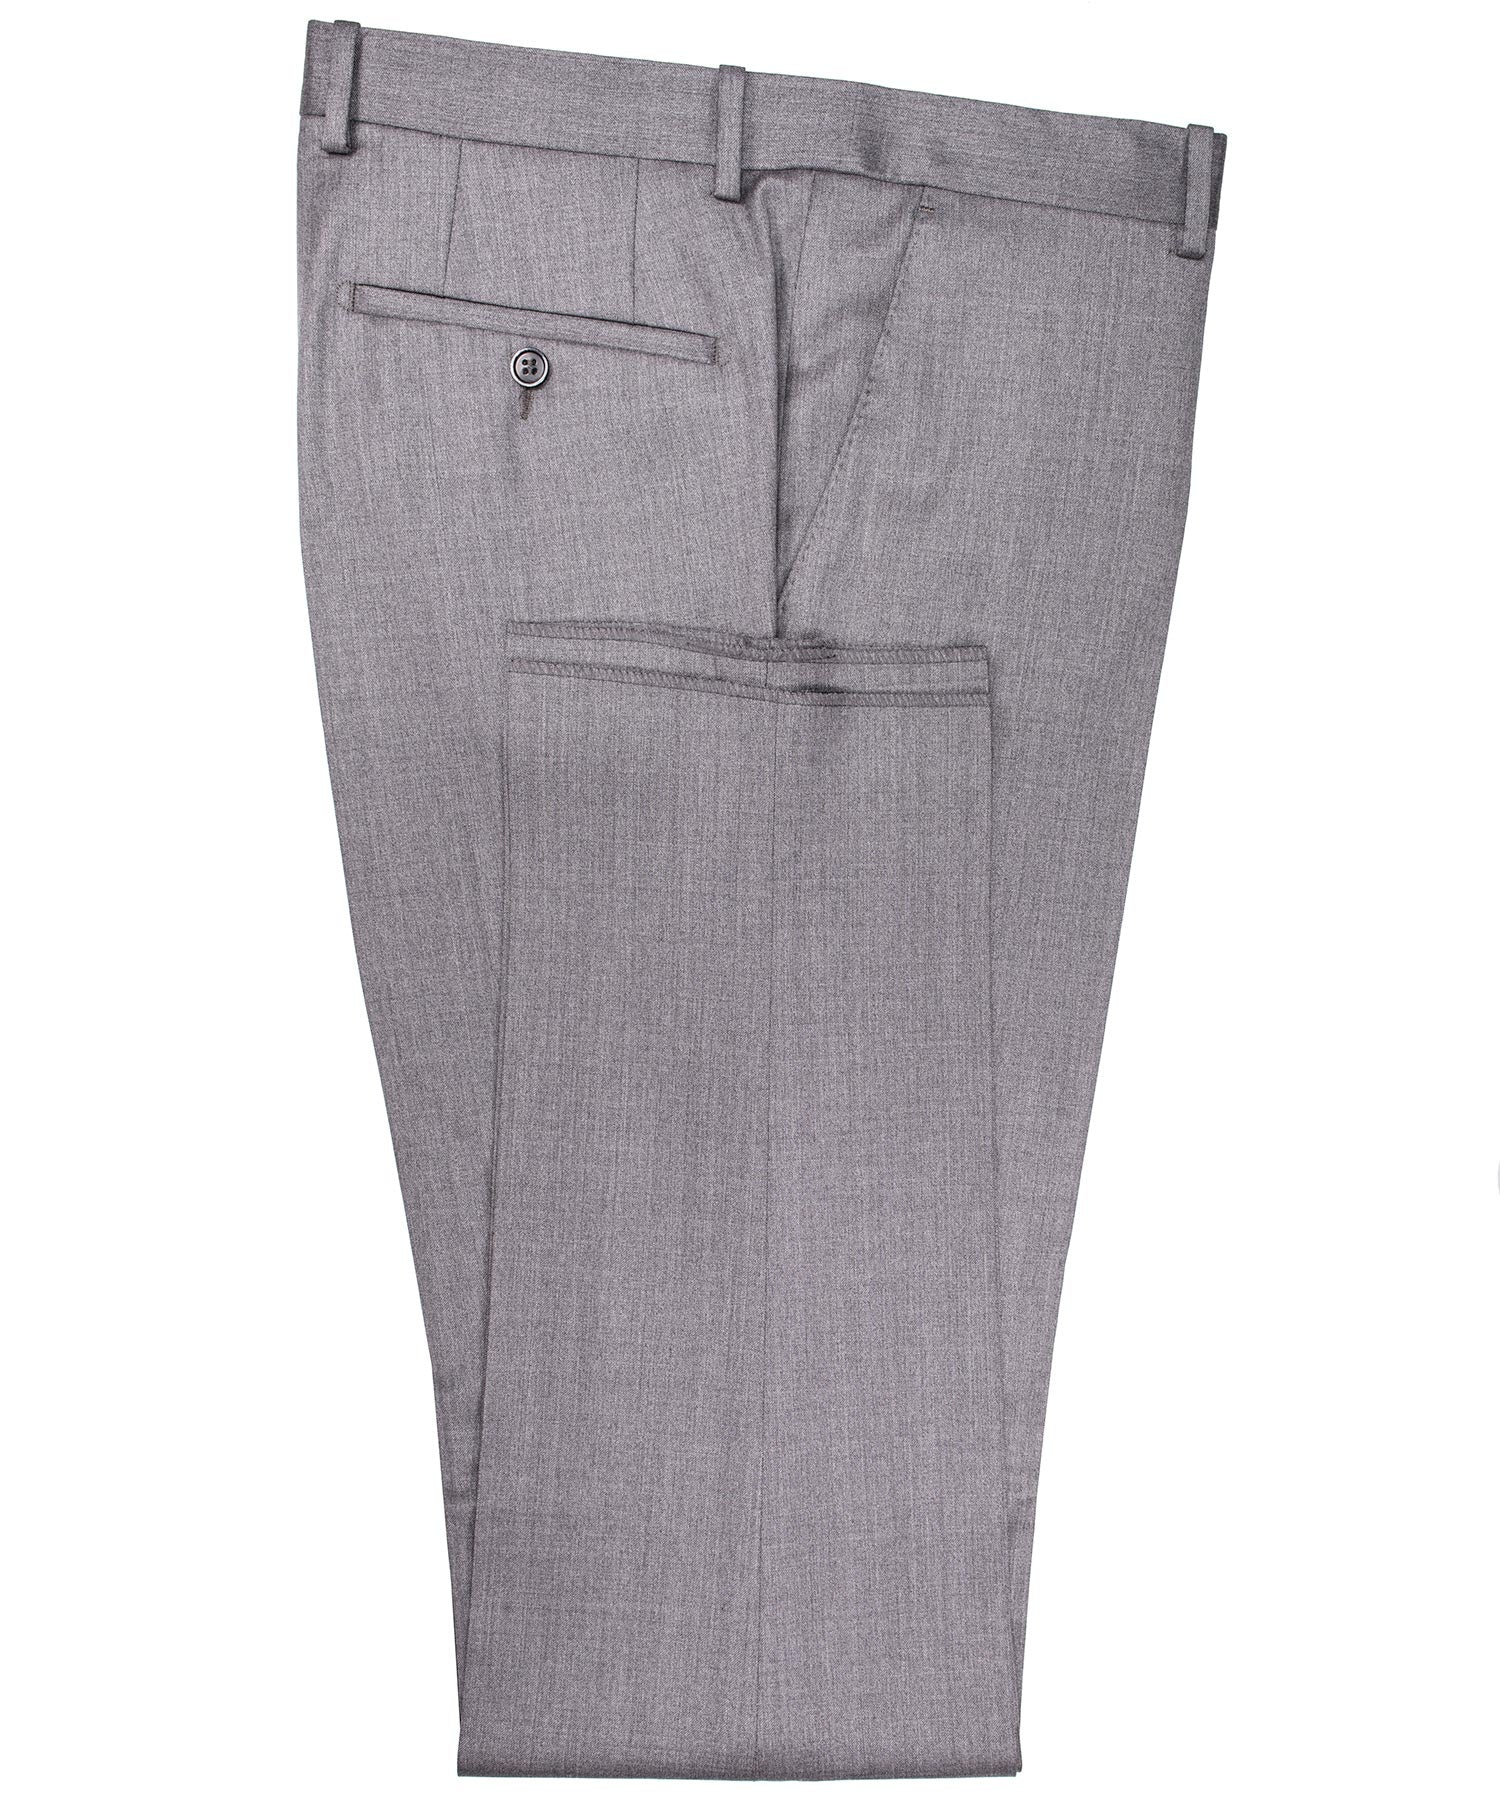 Mid Grey Separates Dress Pant